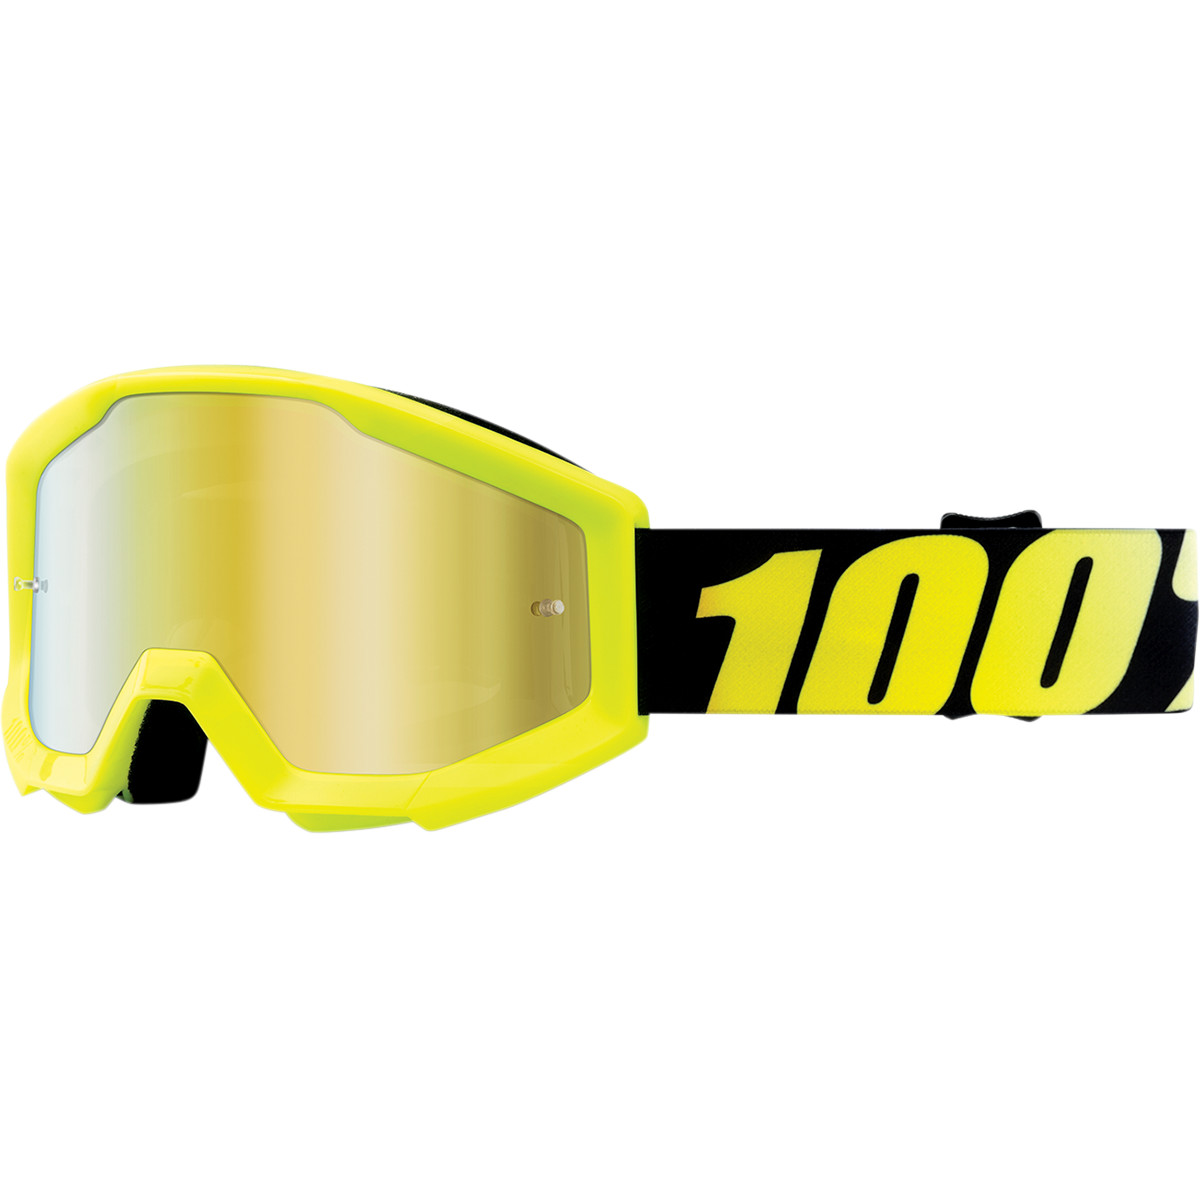 50510-004-02 100% Youth Strata Junior Goggle Neon Yellow Gold Mirror Lens Masque Cross Enfant Kinder Bril Kids Crossbrille